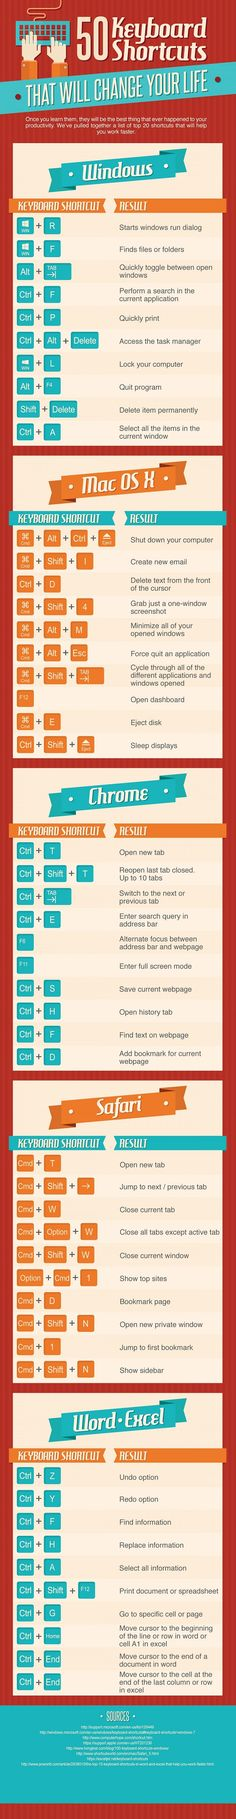 Infographic: 50 Keyboard Shortcuts That Will Change Your Life - DesignTAXI.com